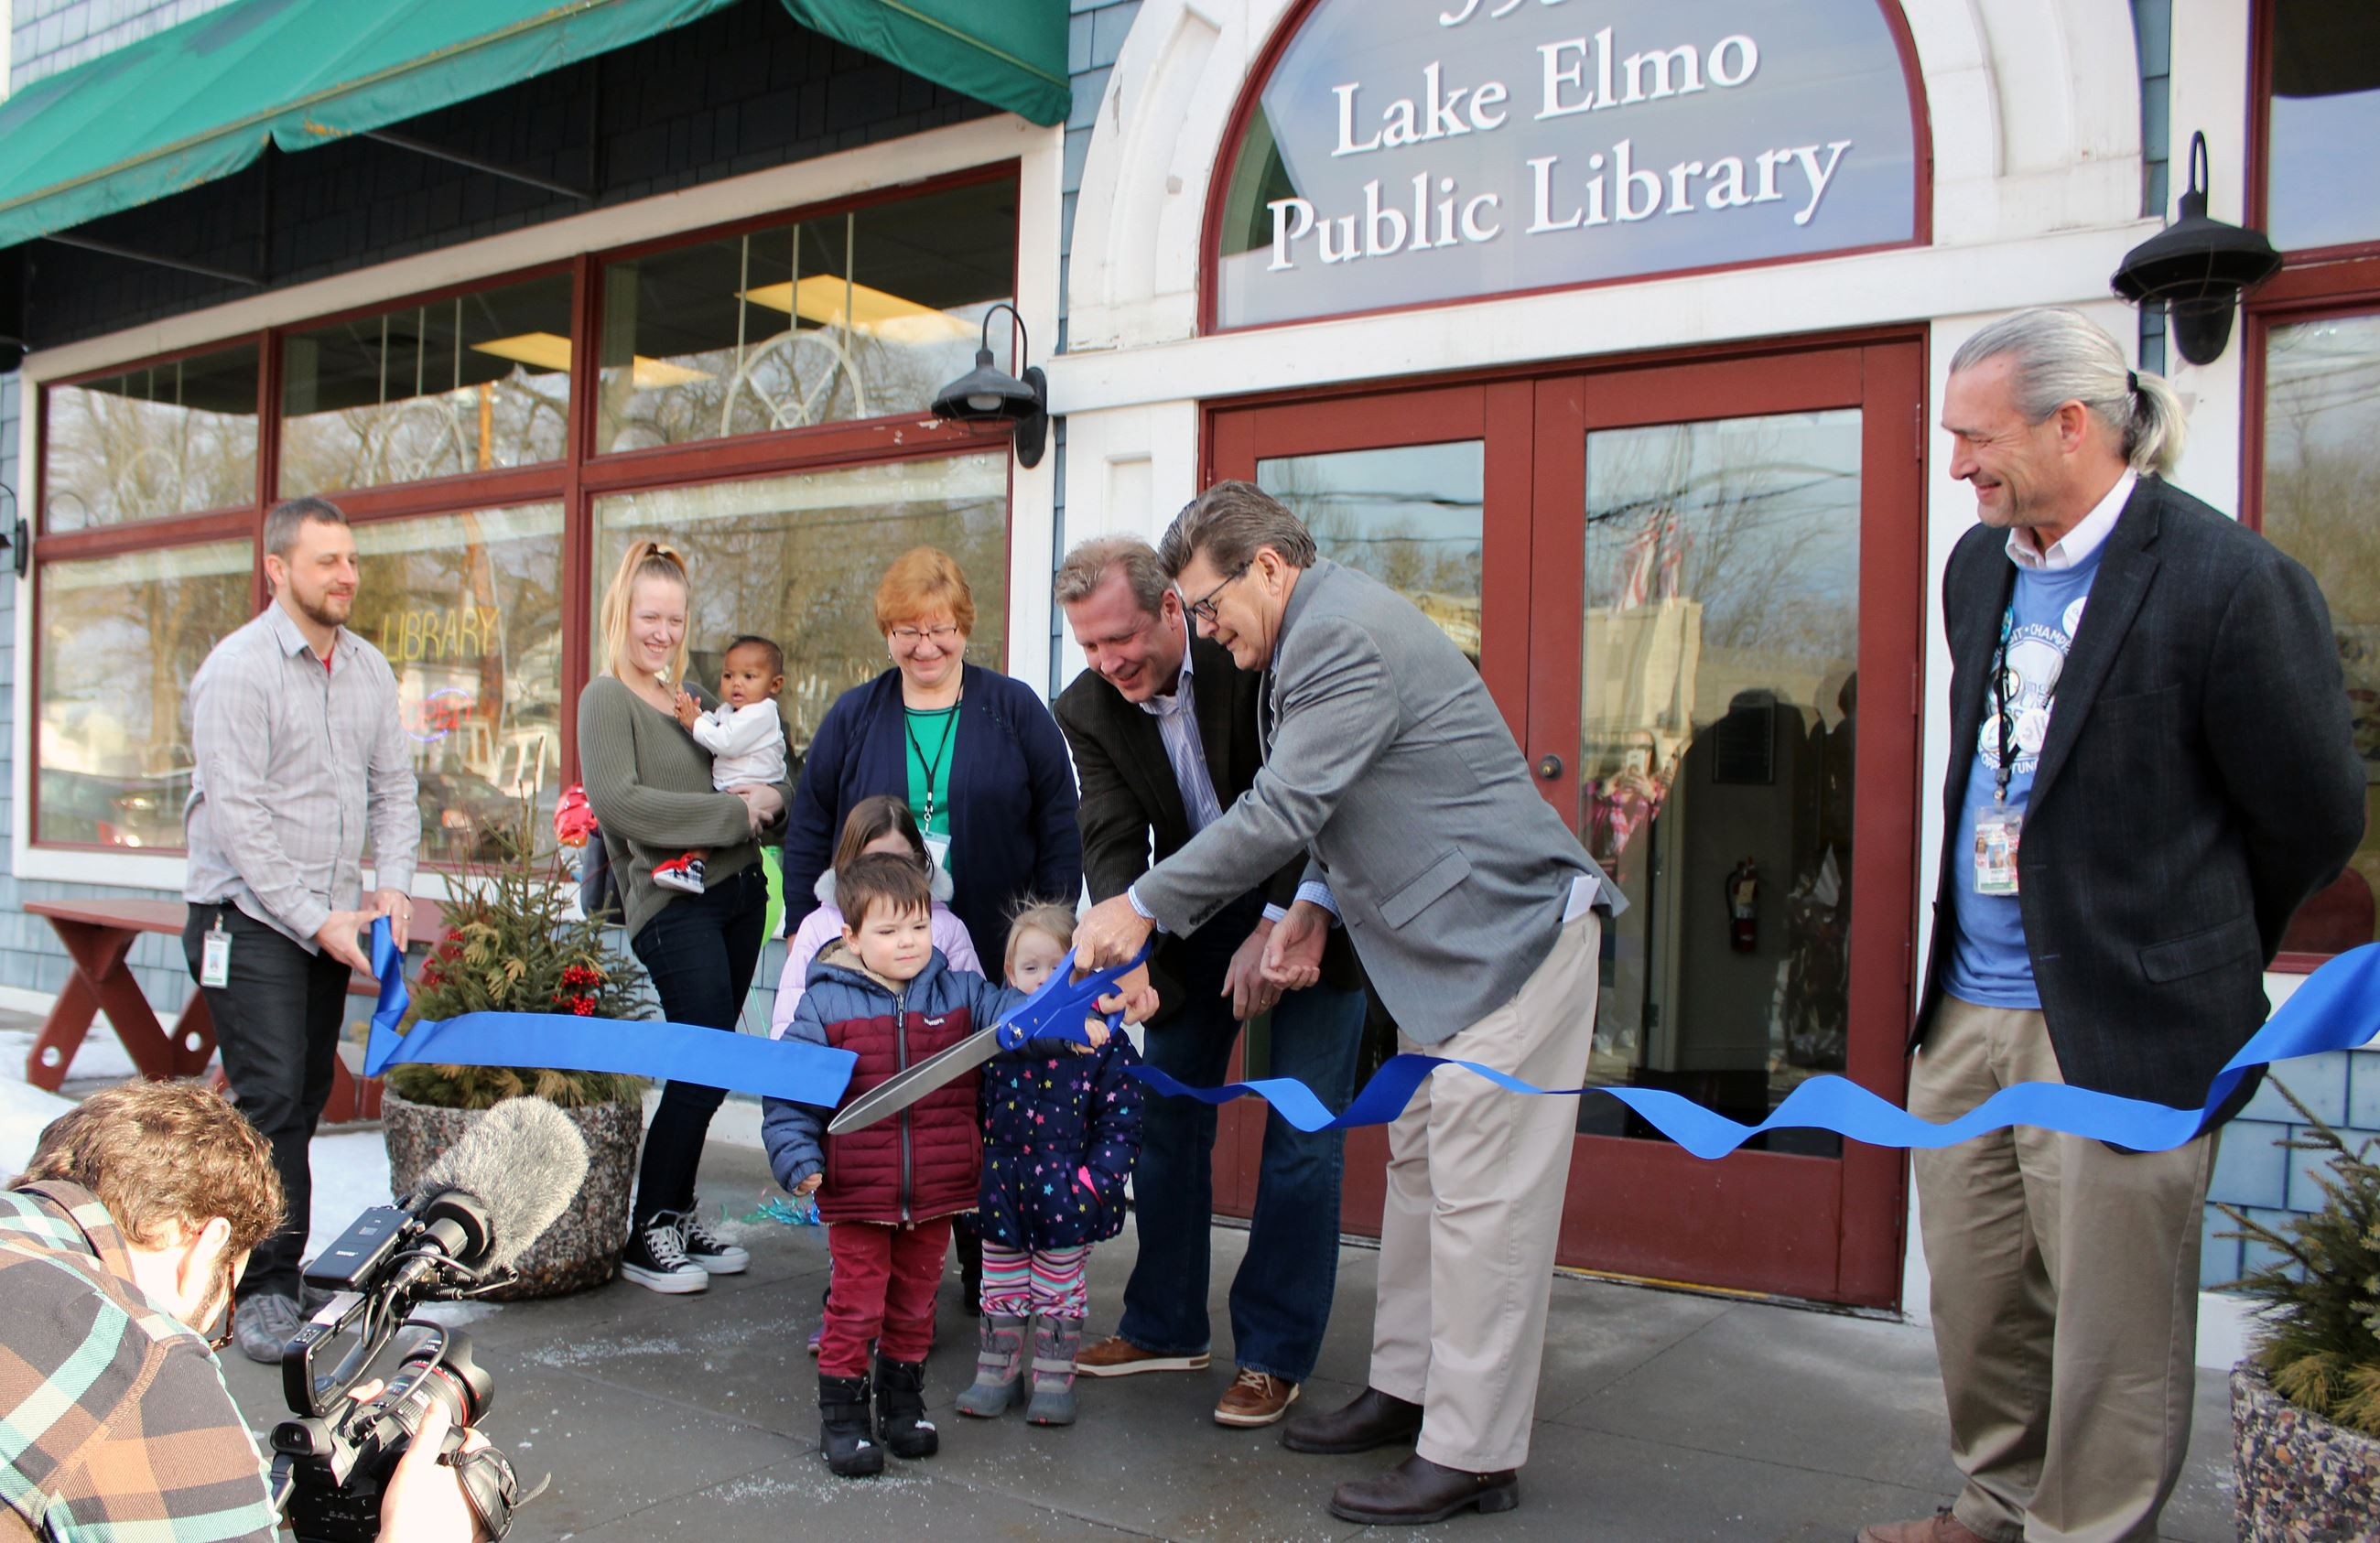 Lake Elmo Library ribbon cutting ceremony